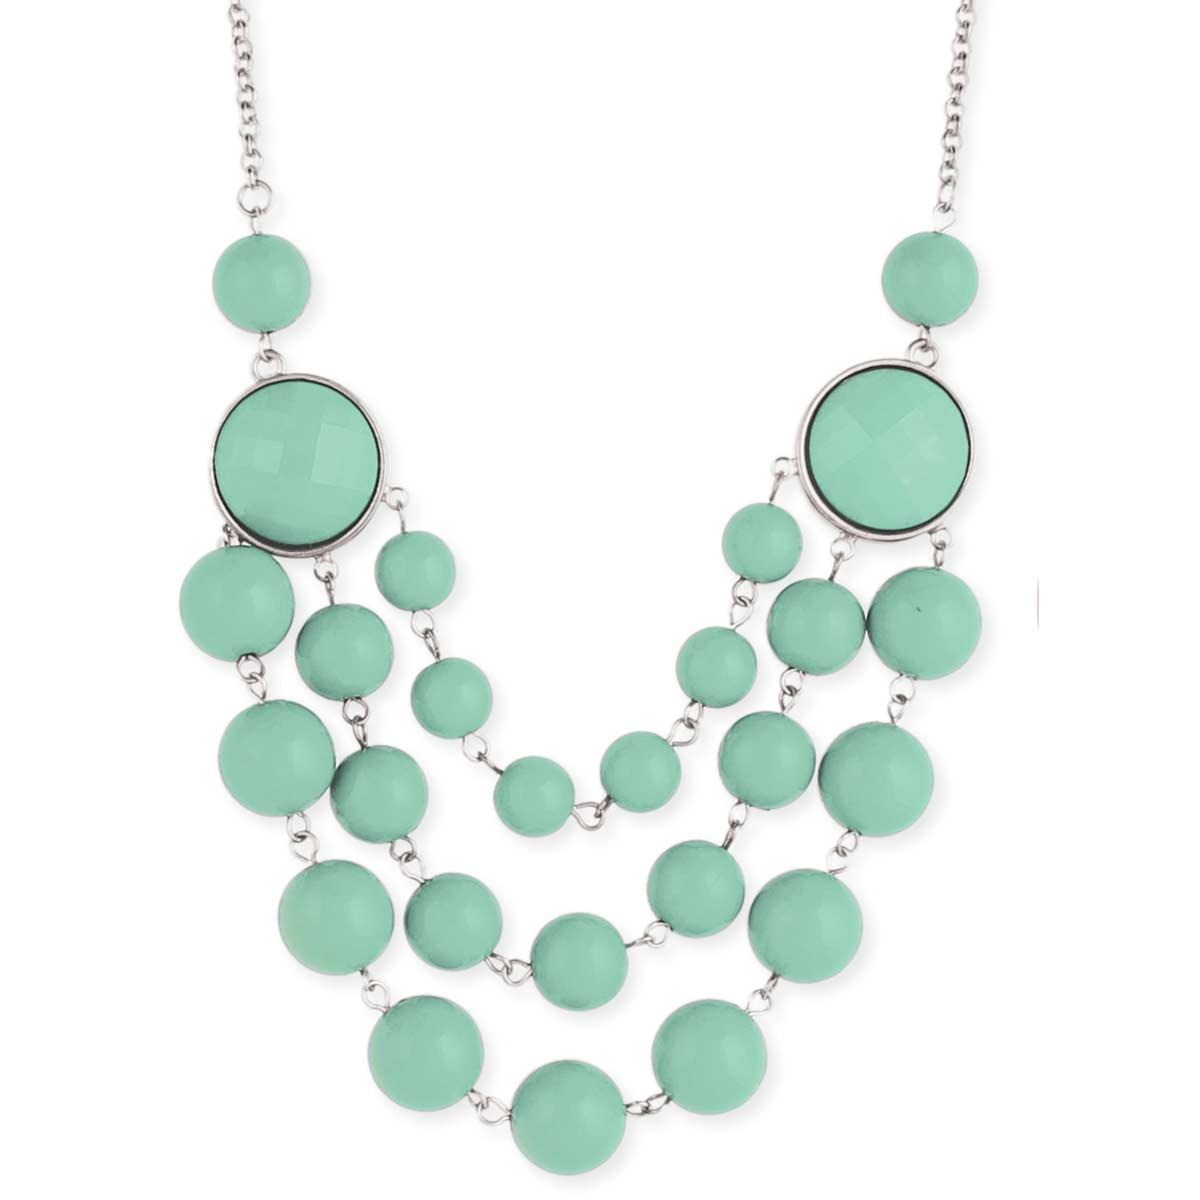 Mint Bead Bauble Necklace